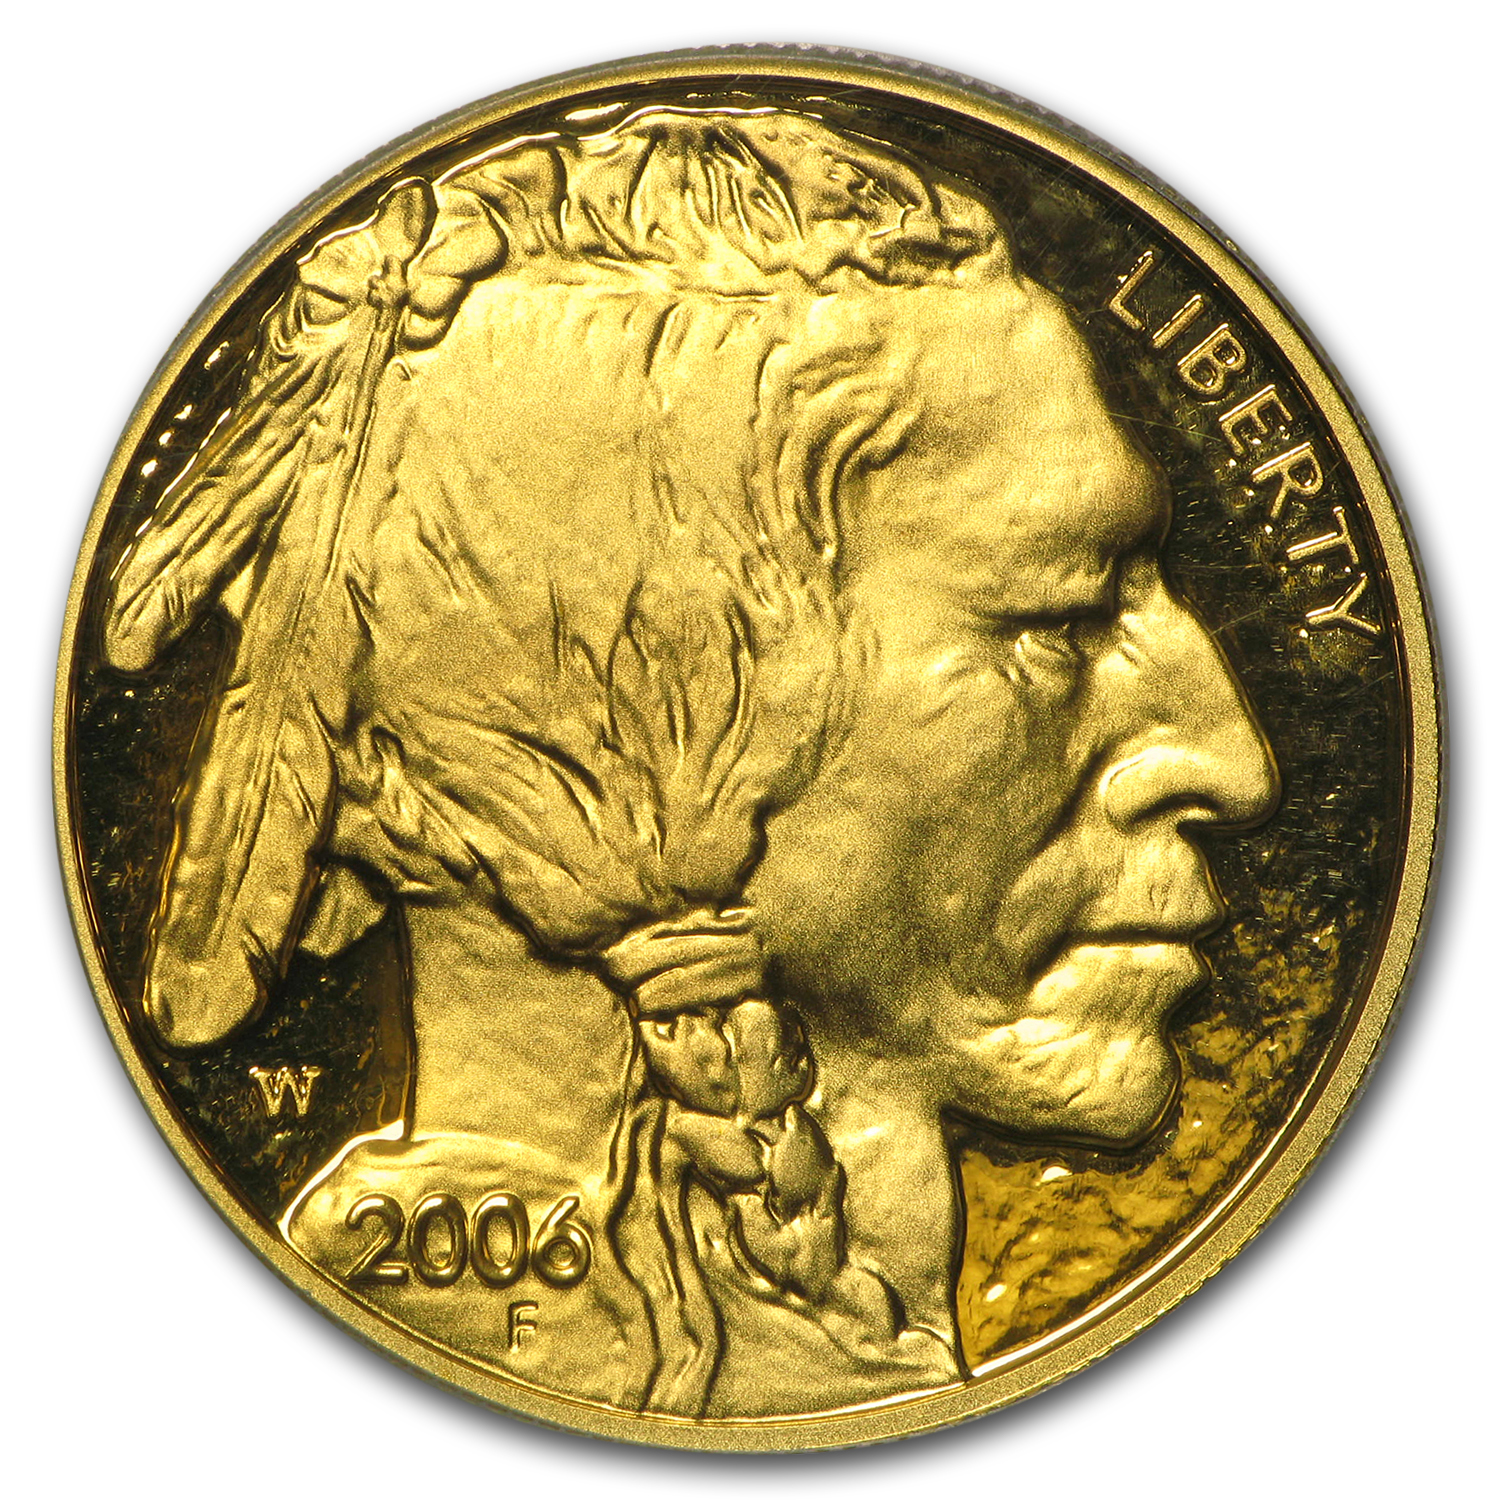 2006-W 1 oz Proof Gold Buffalo PR-69 PCGS (FS)